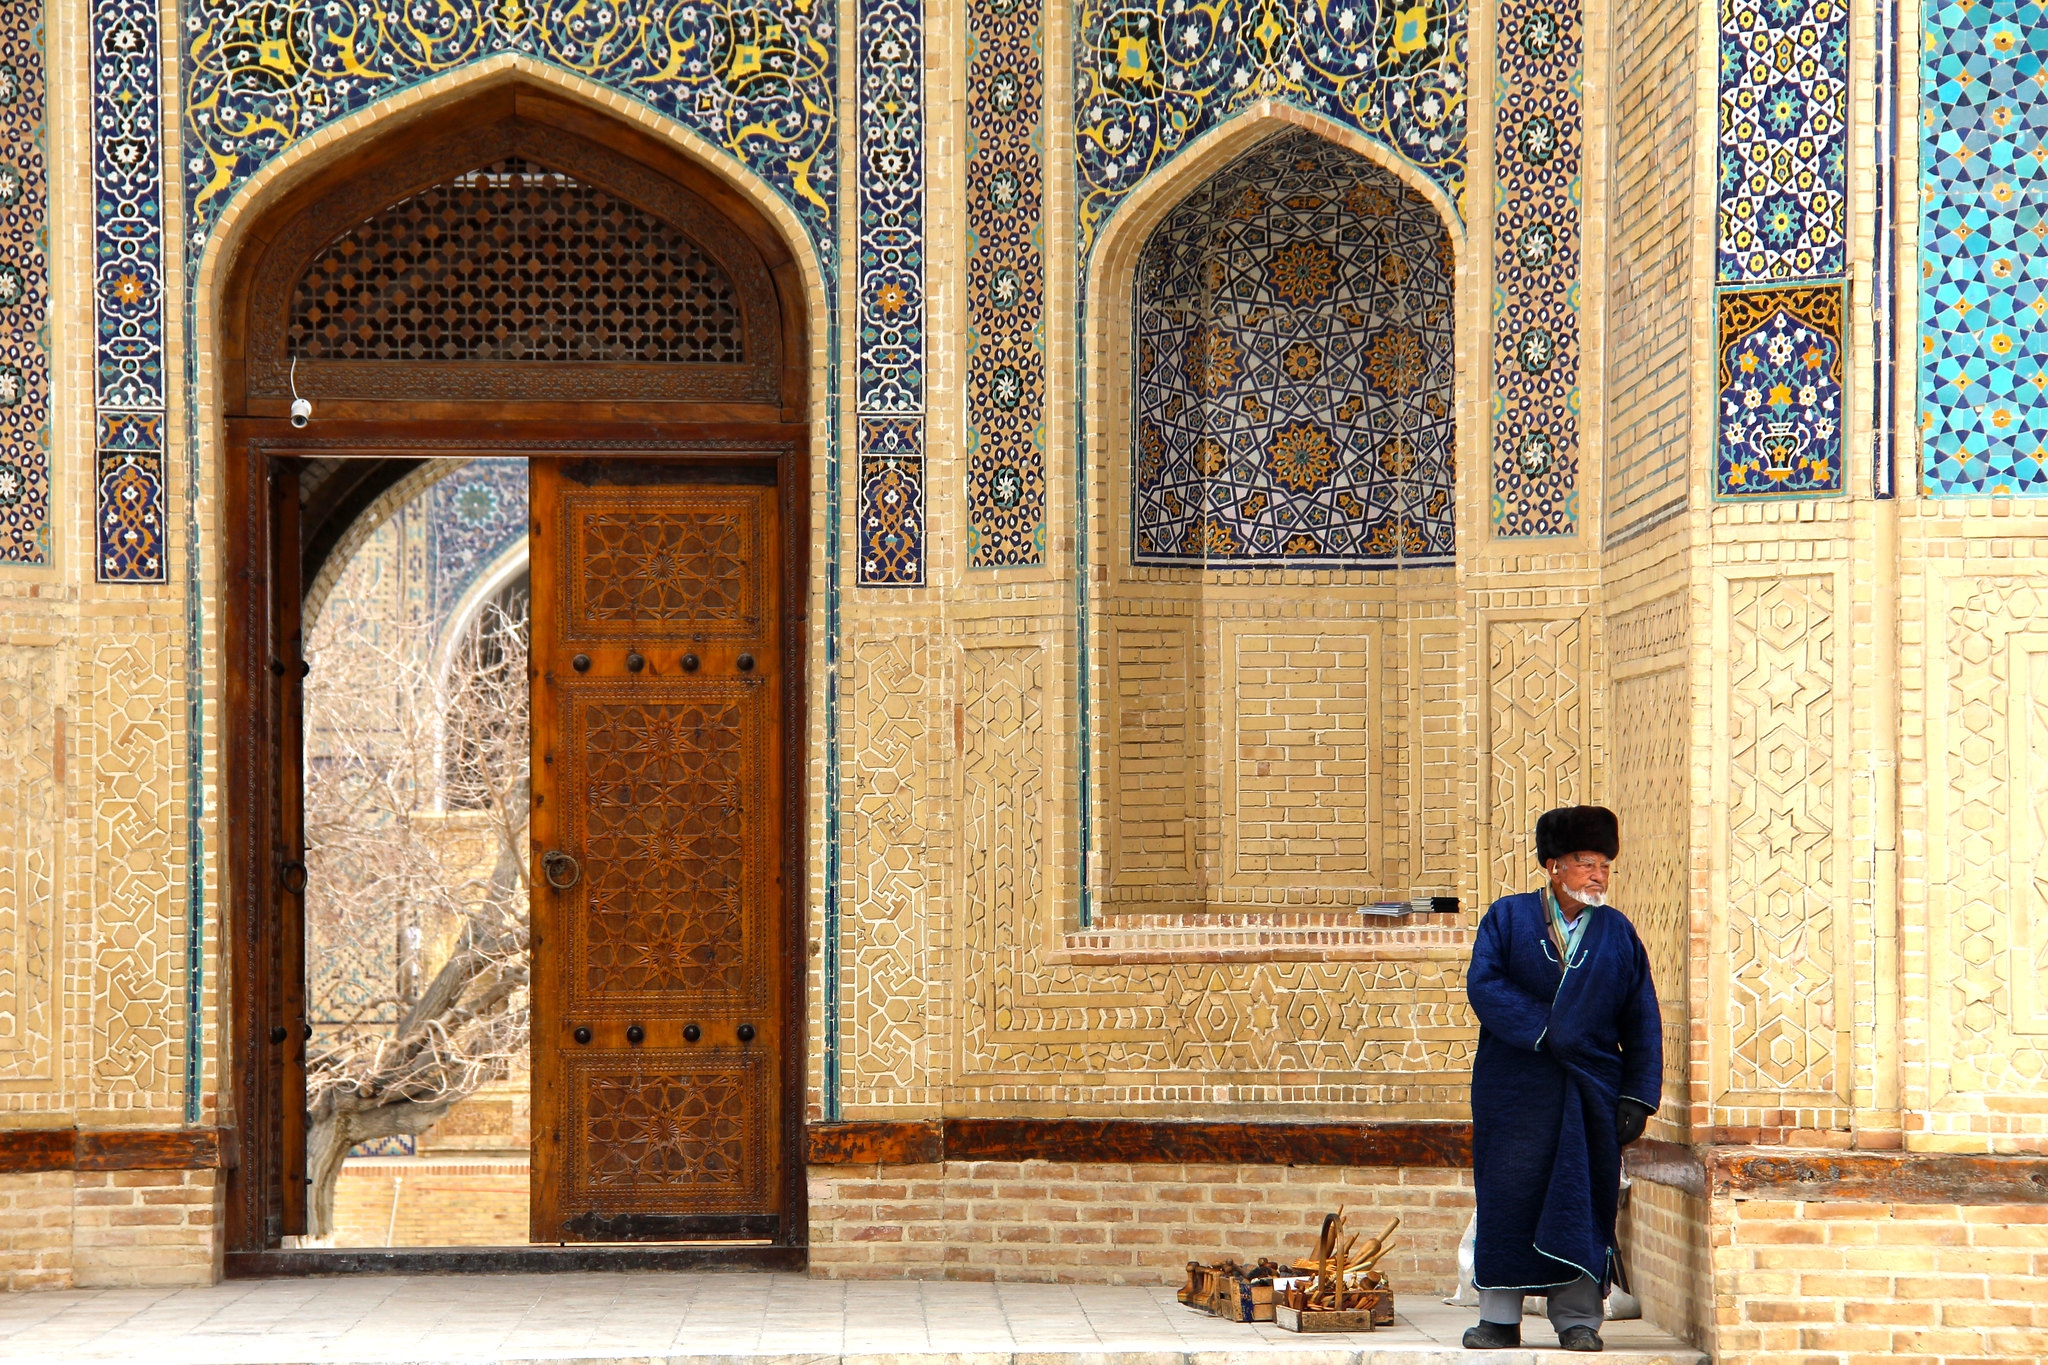 An elder sells his wares outside the stunning Kalyan Mosque in Bukhara, Uzbekistan